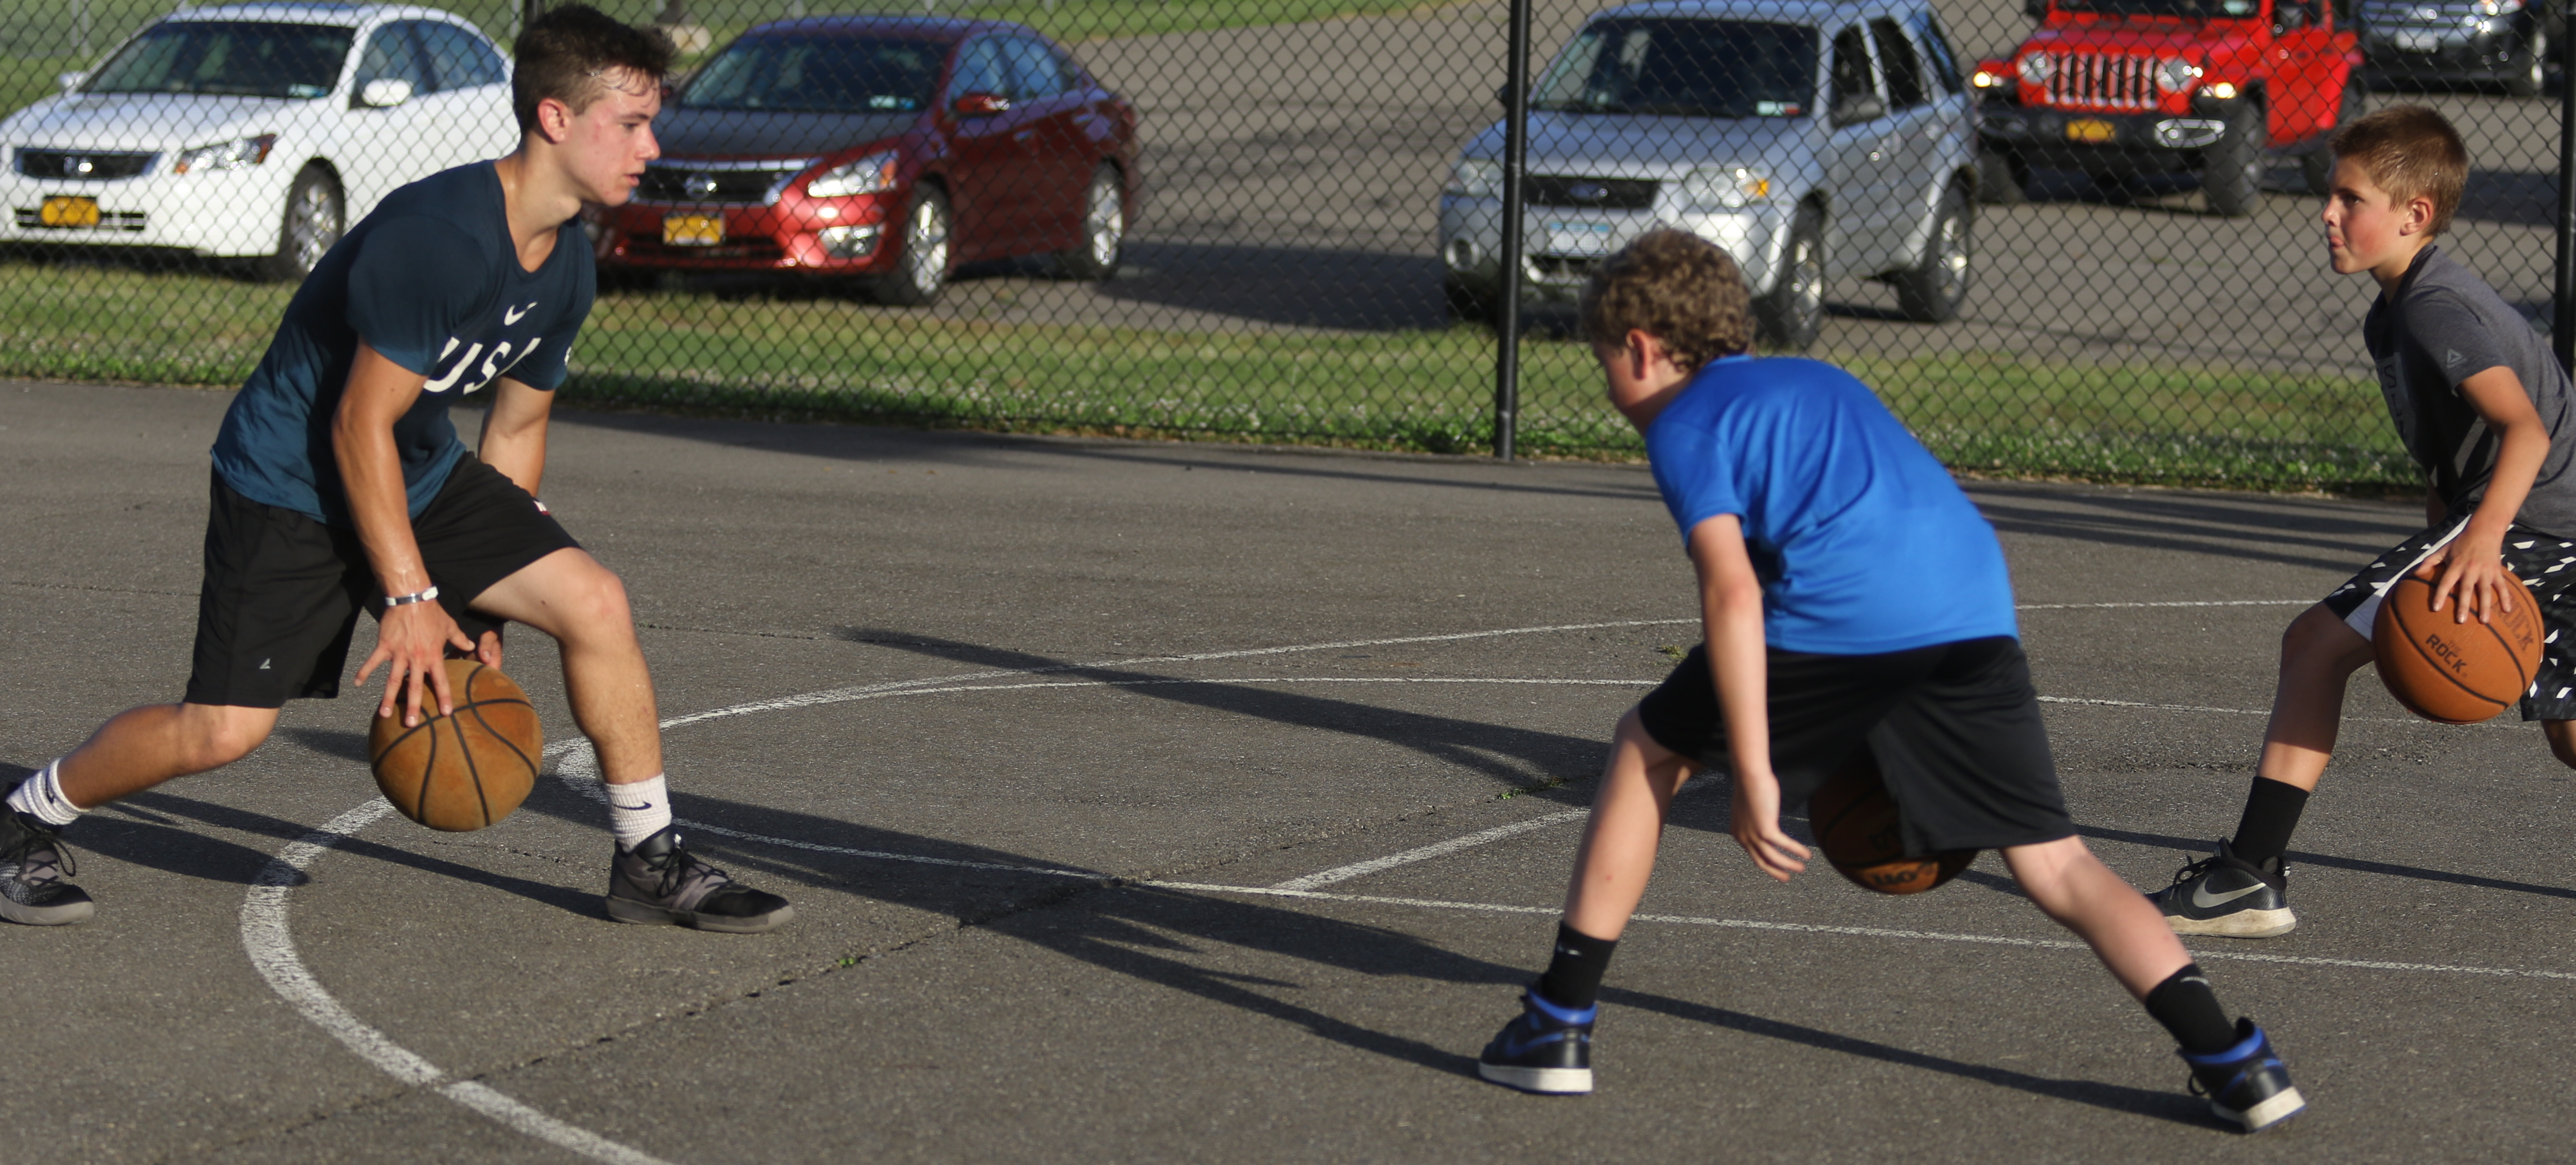 WAVERLY TEEN GIVING BACK TO COMMUNITY, SPORT BY HELPING WITH LOCAL AAU HOOP PROGRAM